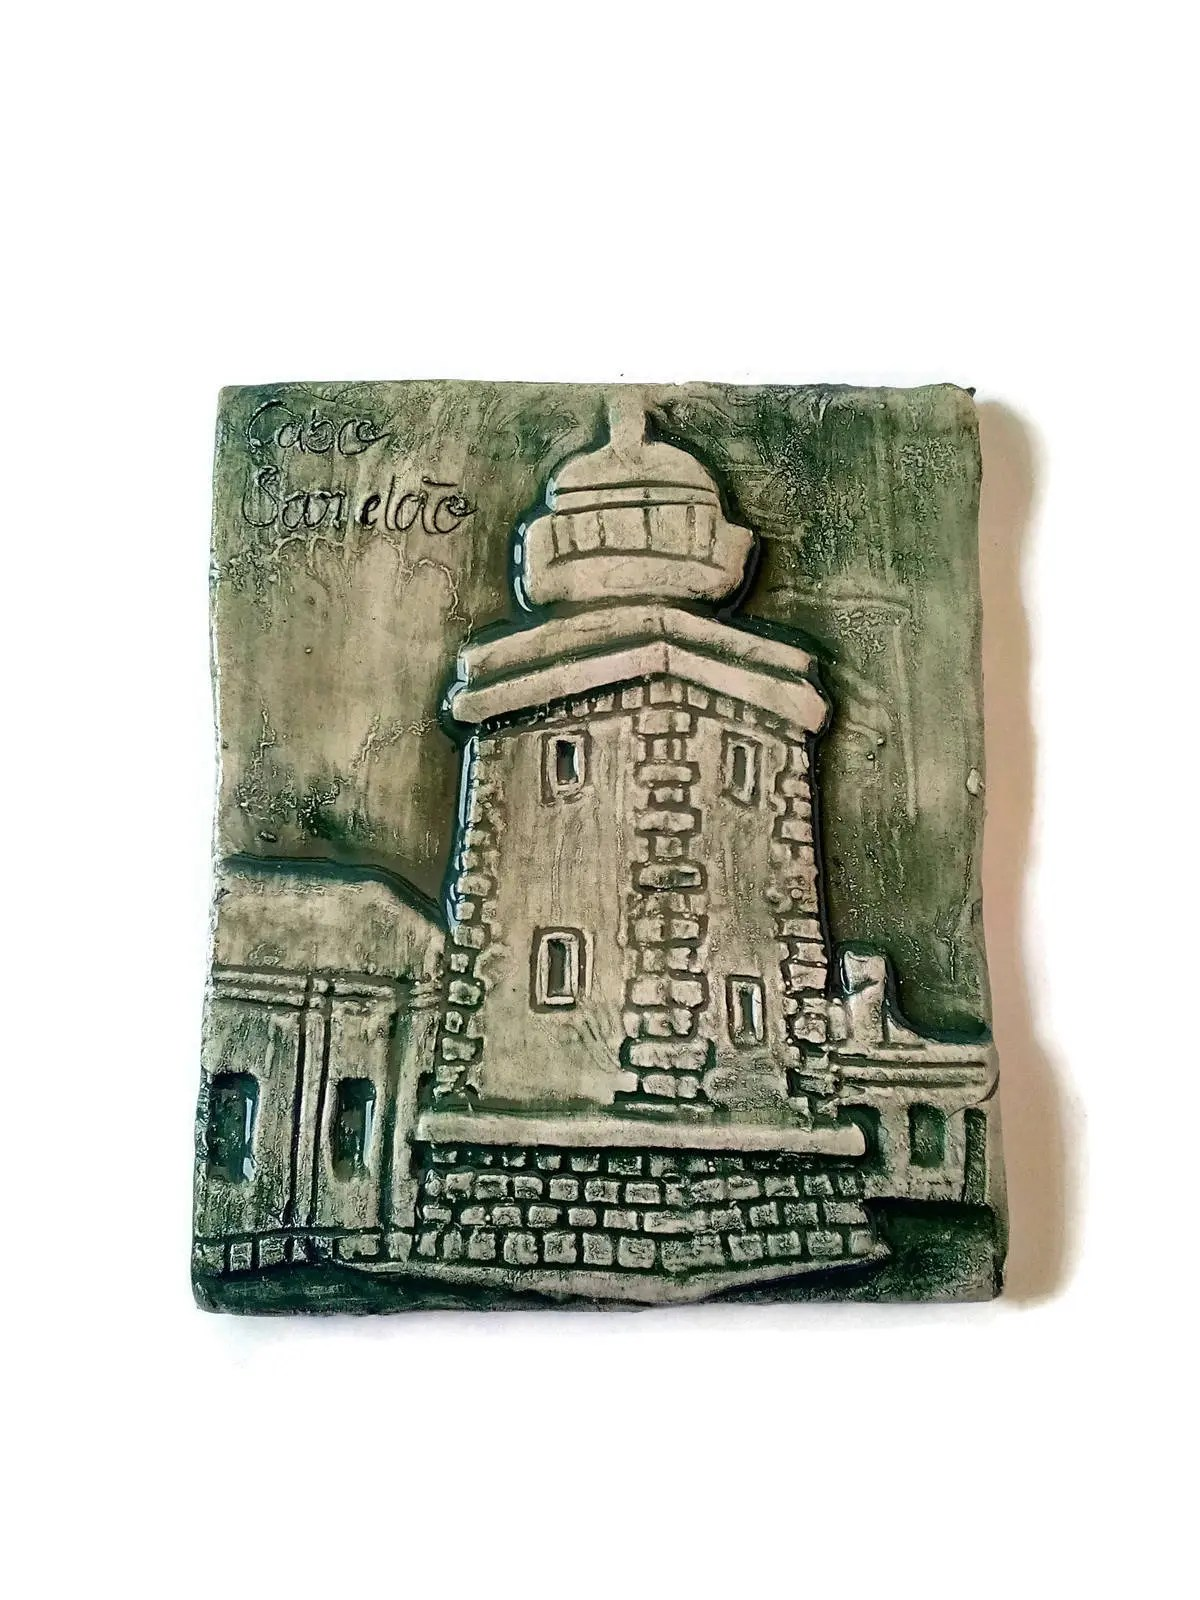 decorative ceramic tiles kitchen yellow table lighthouse tile with low relief etsy image 0